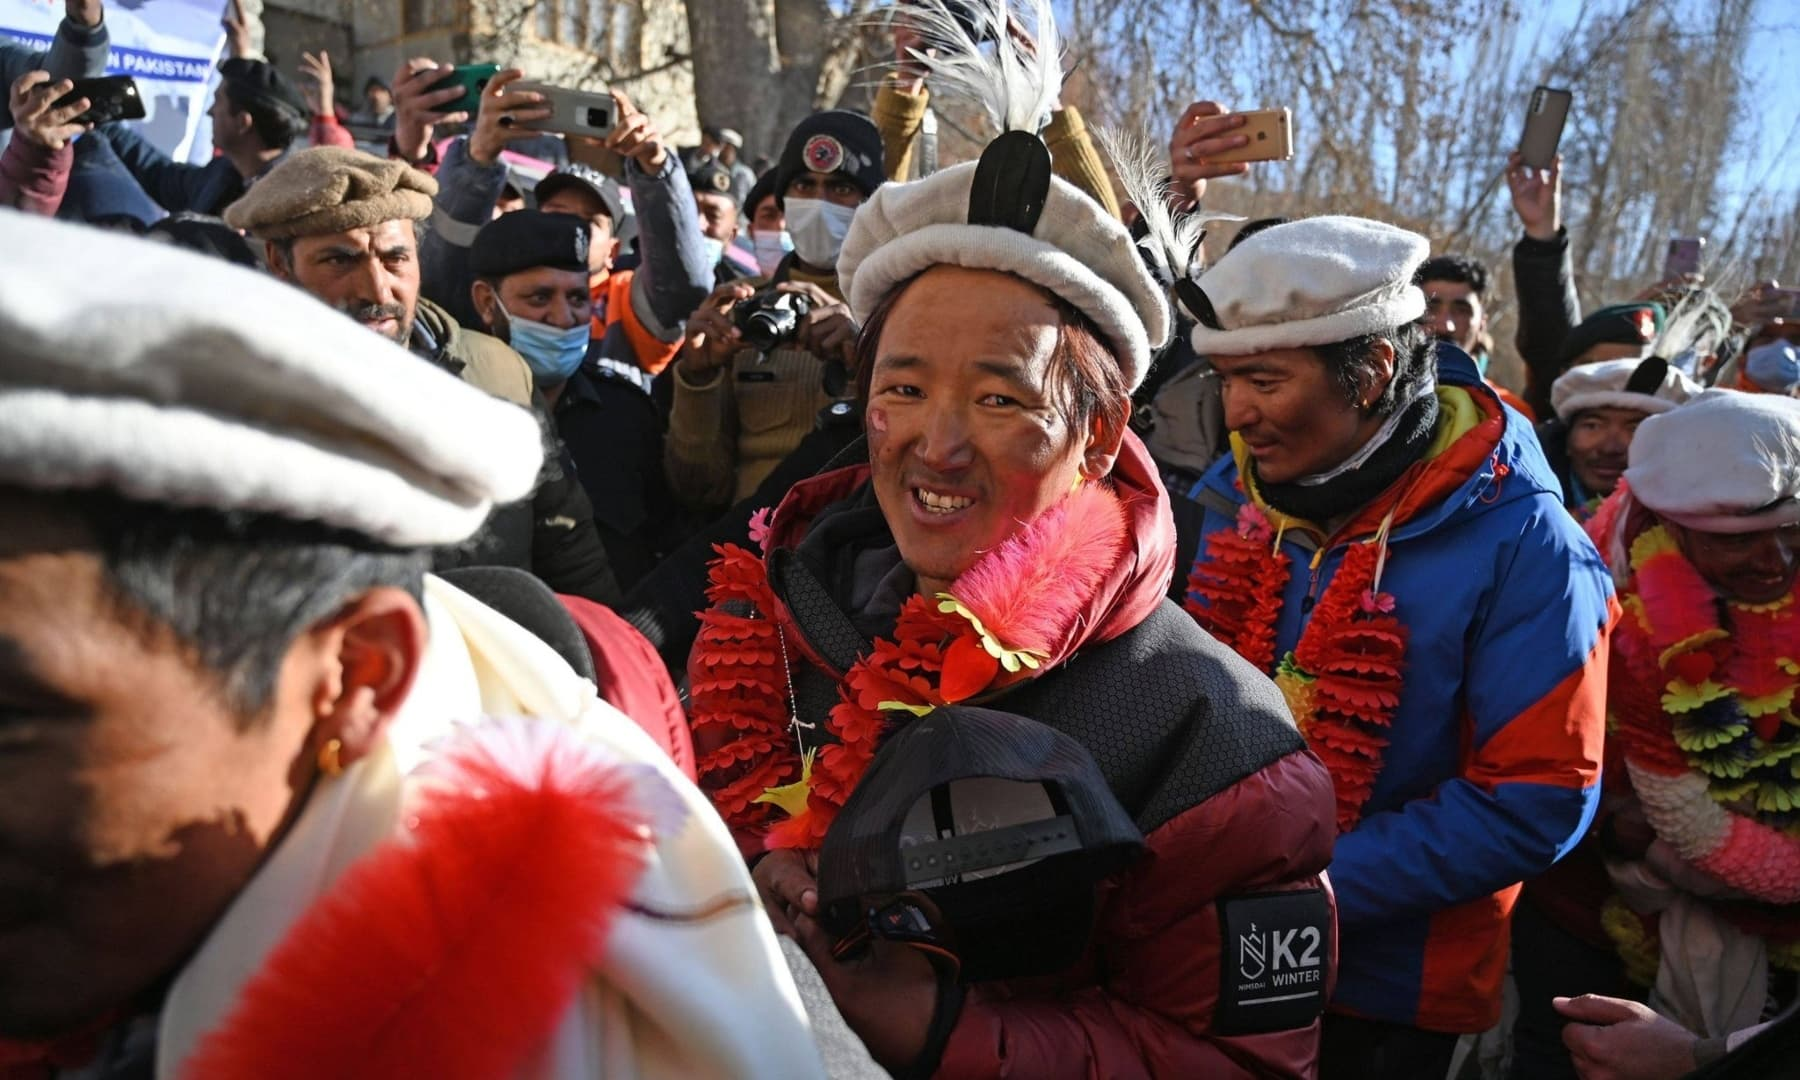 People garland Nepal's climbers during a welcome ceremony upon their arrival after becoming the first to summit Pakistan's K2 in winter, at Shigar district in Gilgit-Baltistan, Jan 20, 2021. — AFP